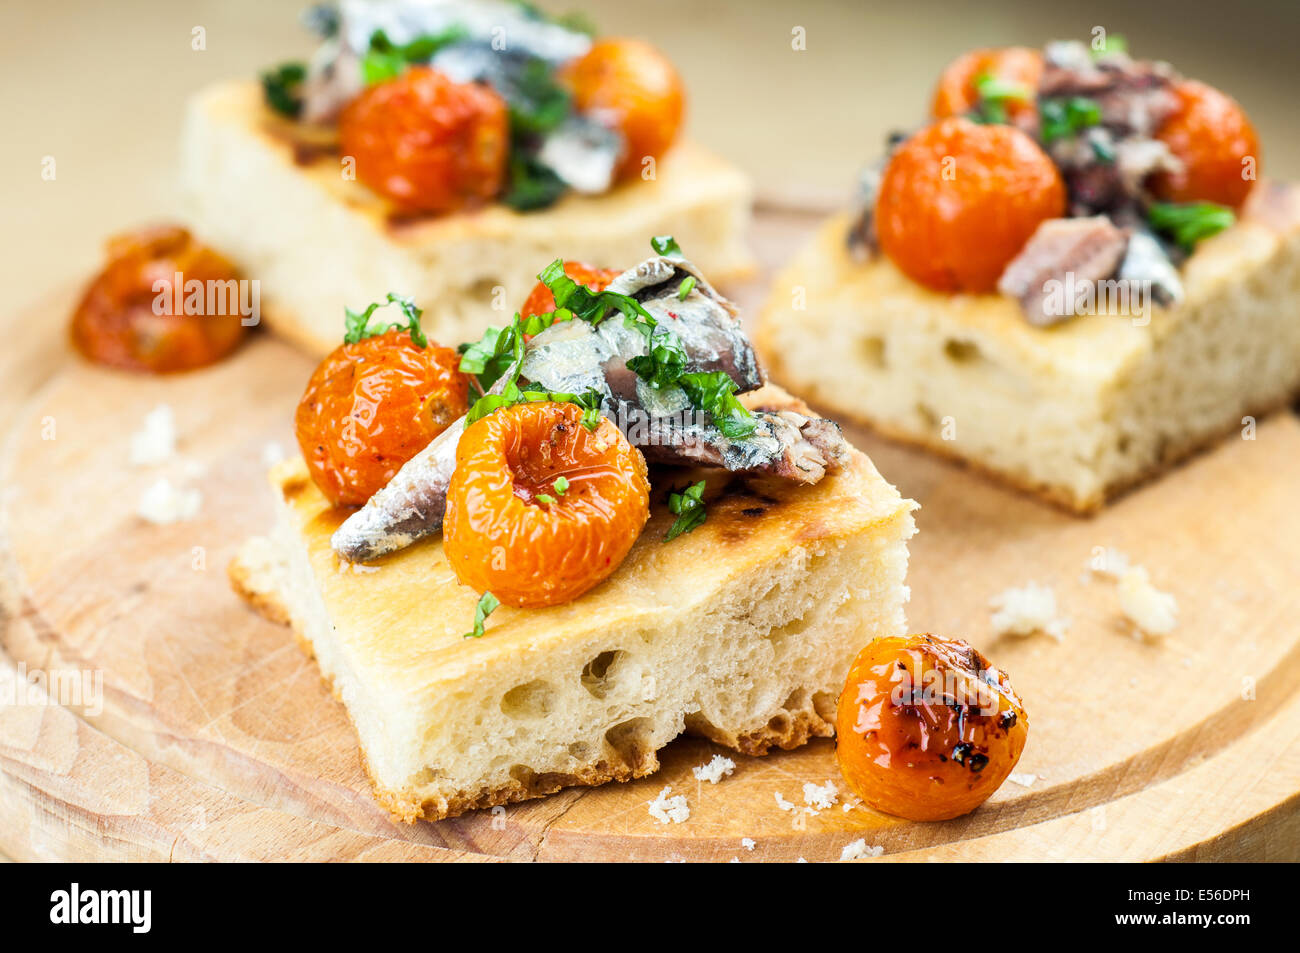 Delicious focaccia with sardines and cherry tomatoes on wood - Stock Image